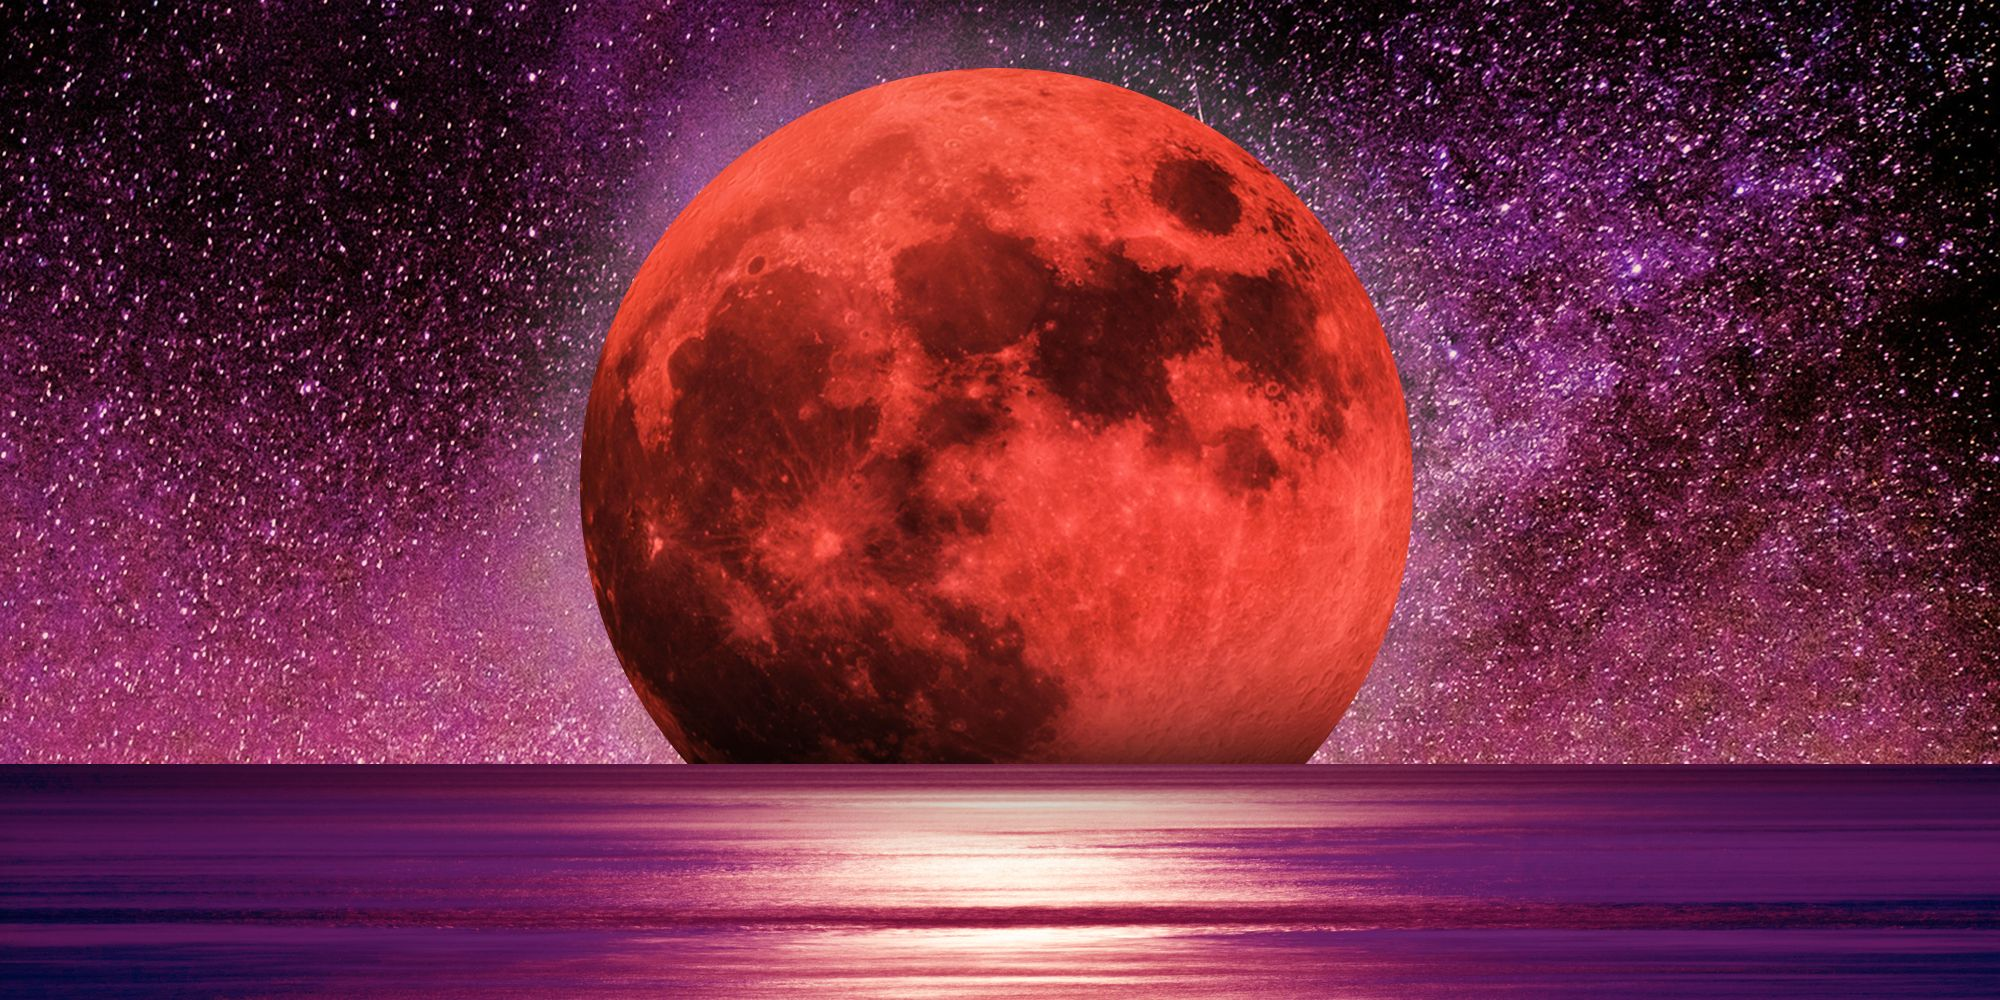 What May's Supermoon, Lunar Eclipse Means for Your Zodiac Sign